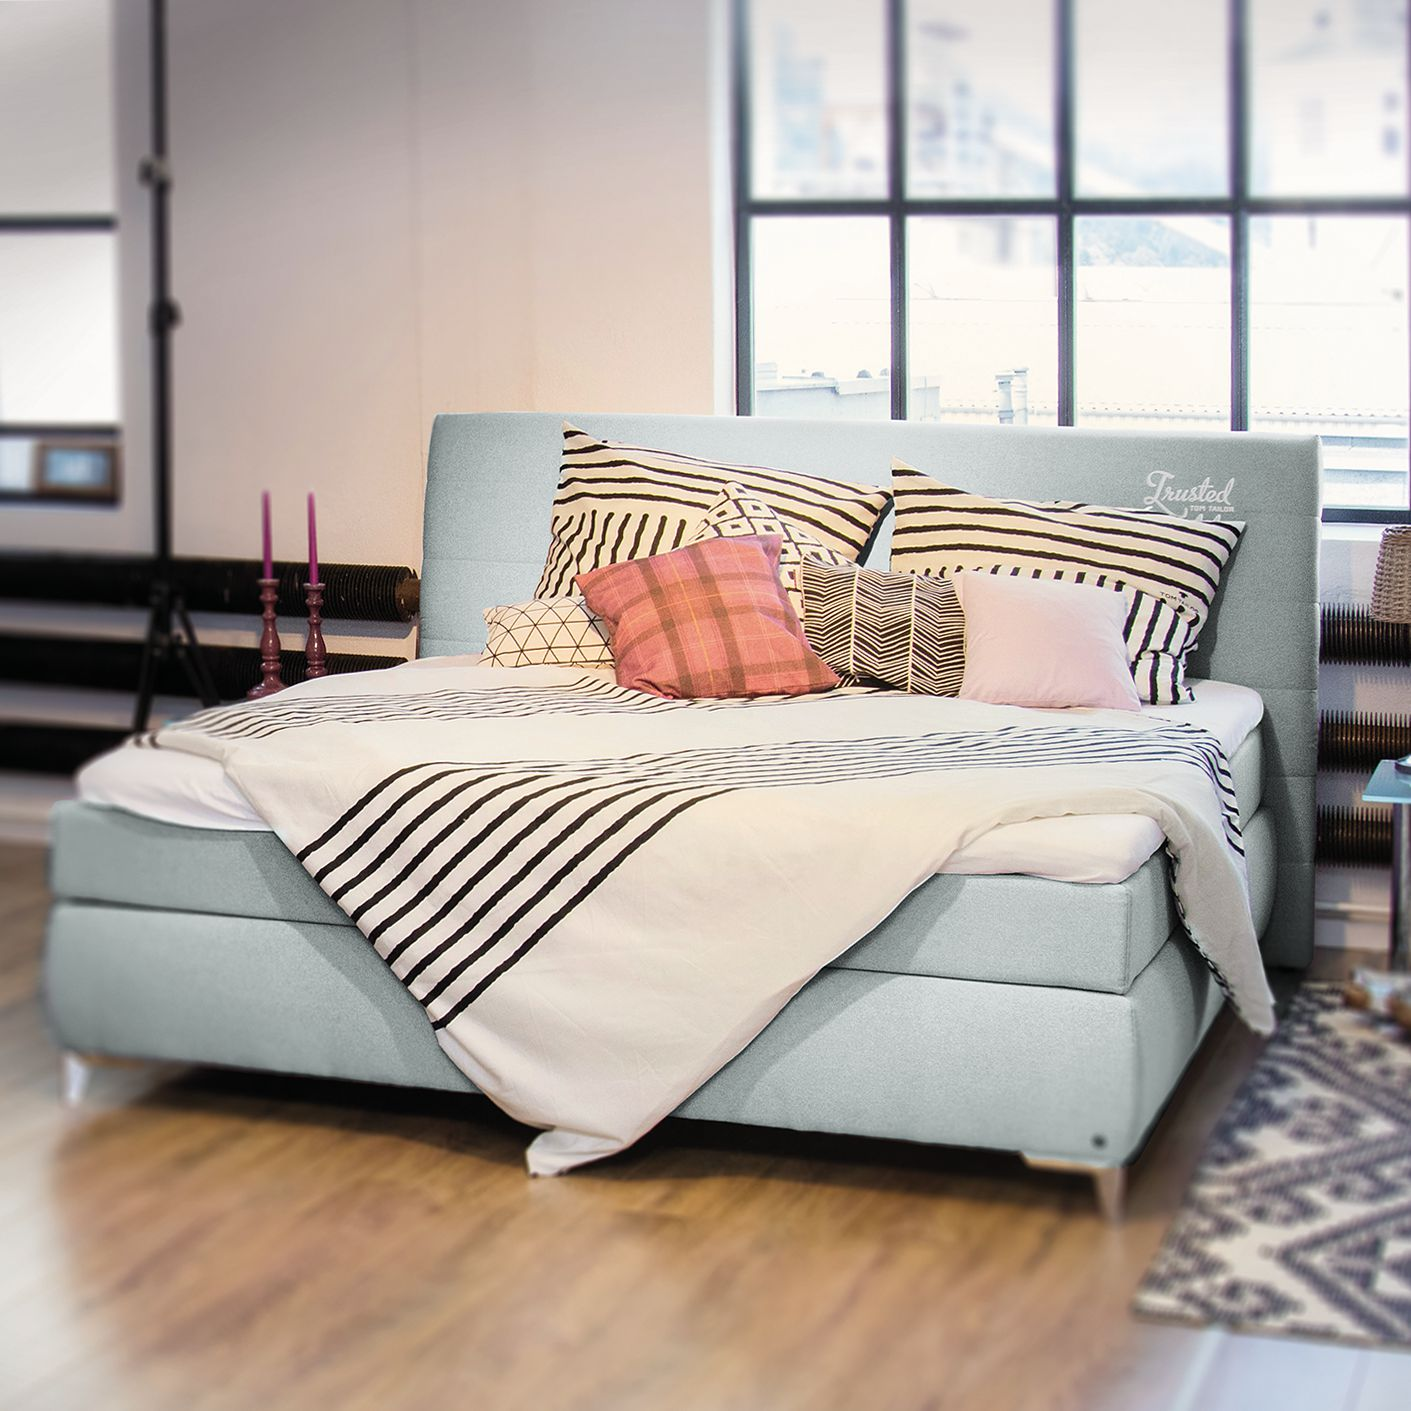 home24 Boxspringbett Soft Line Webstoff